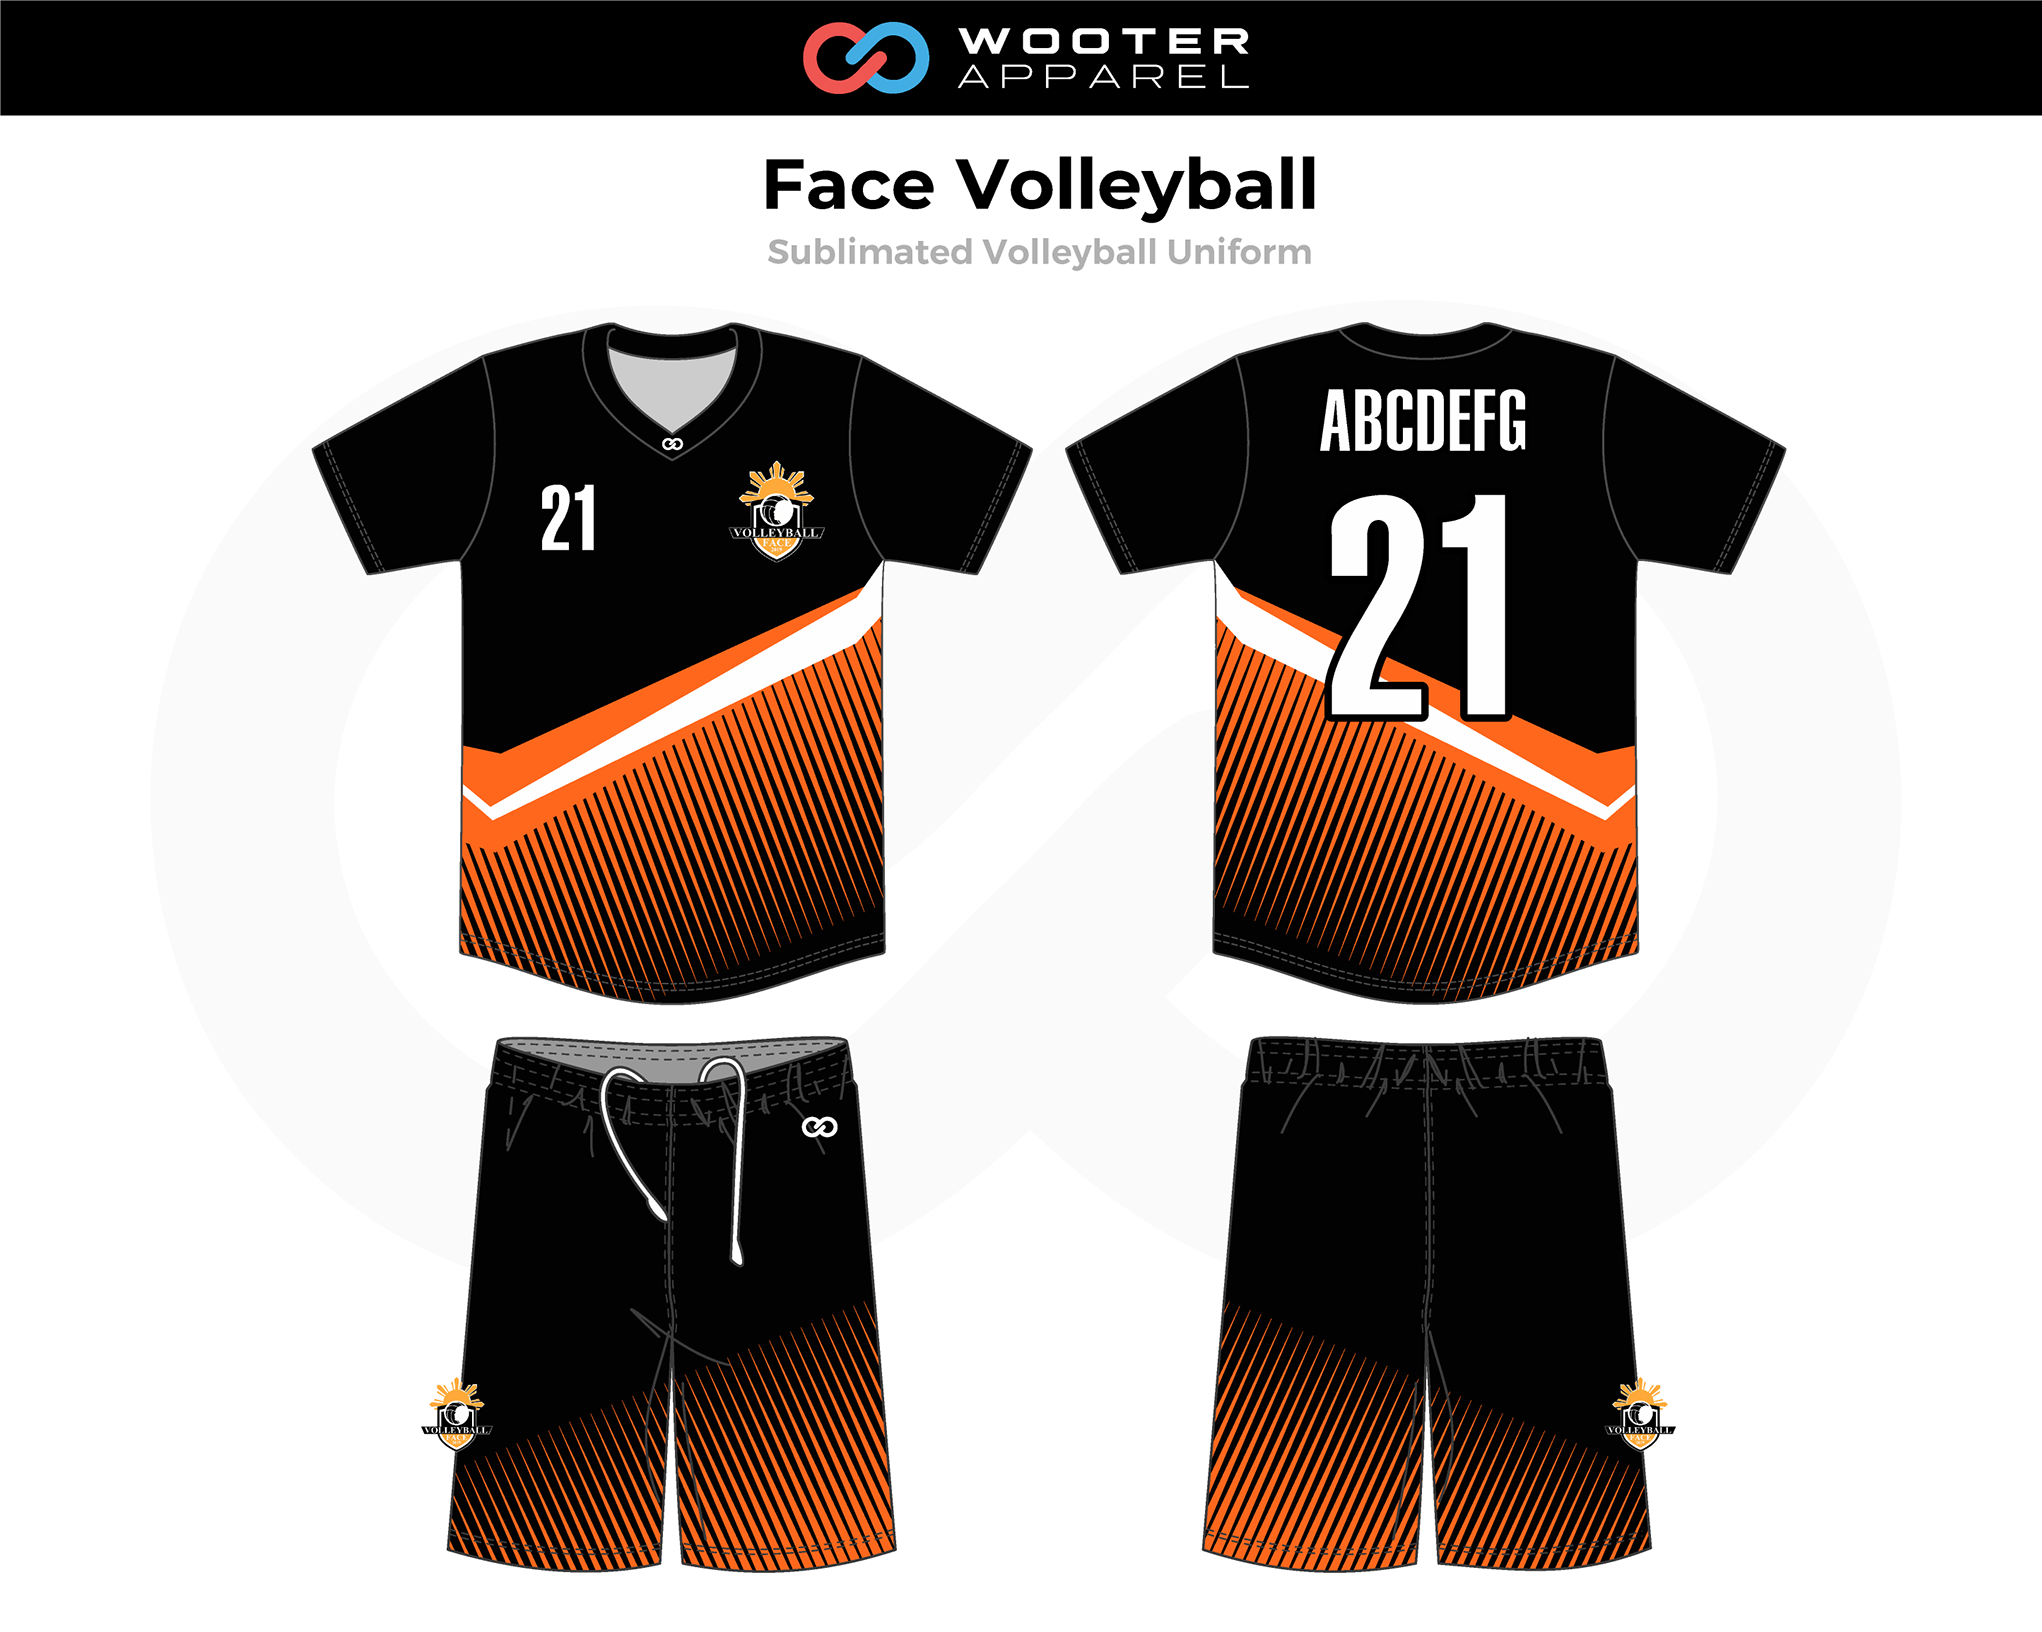 FACE Black Orange White Volleyball Uniforms, Jerseys, and Shorts